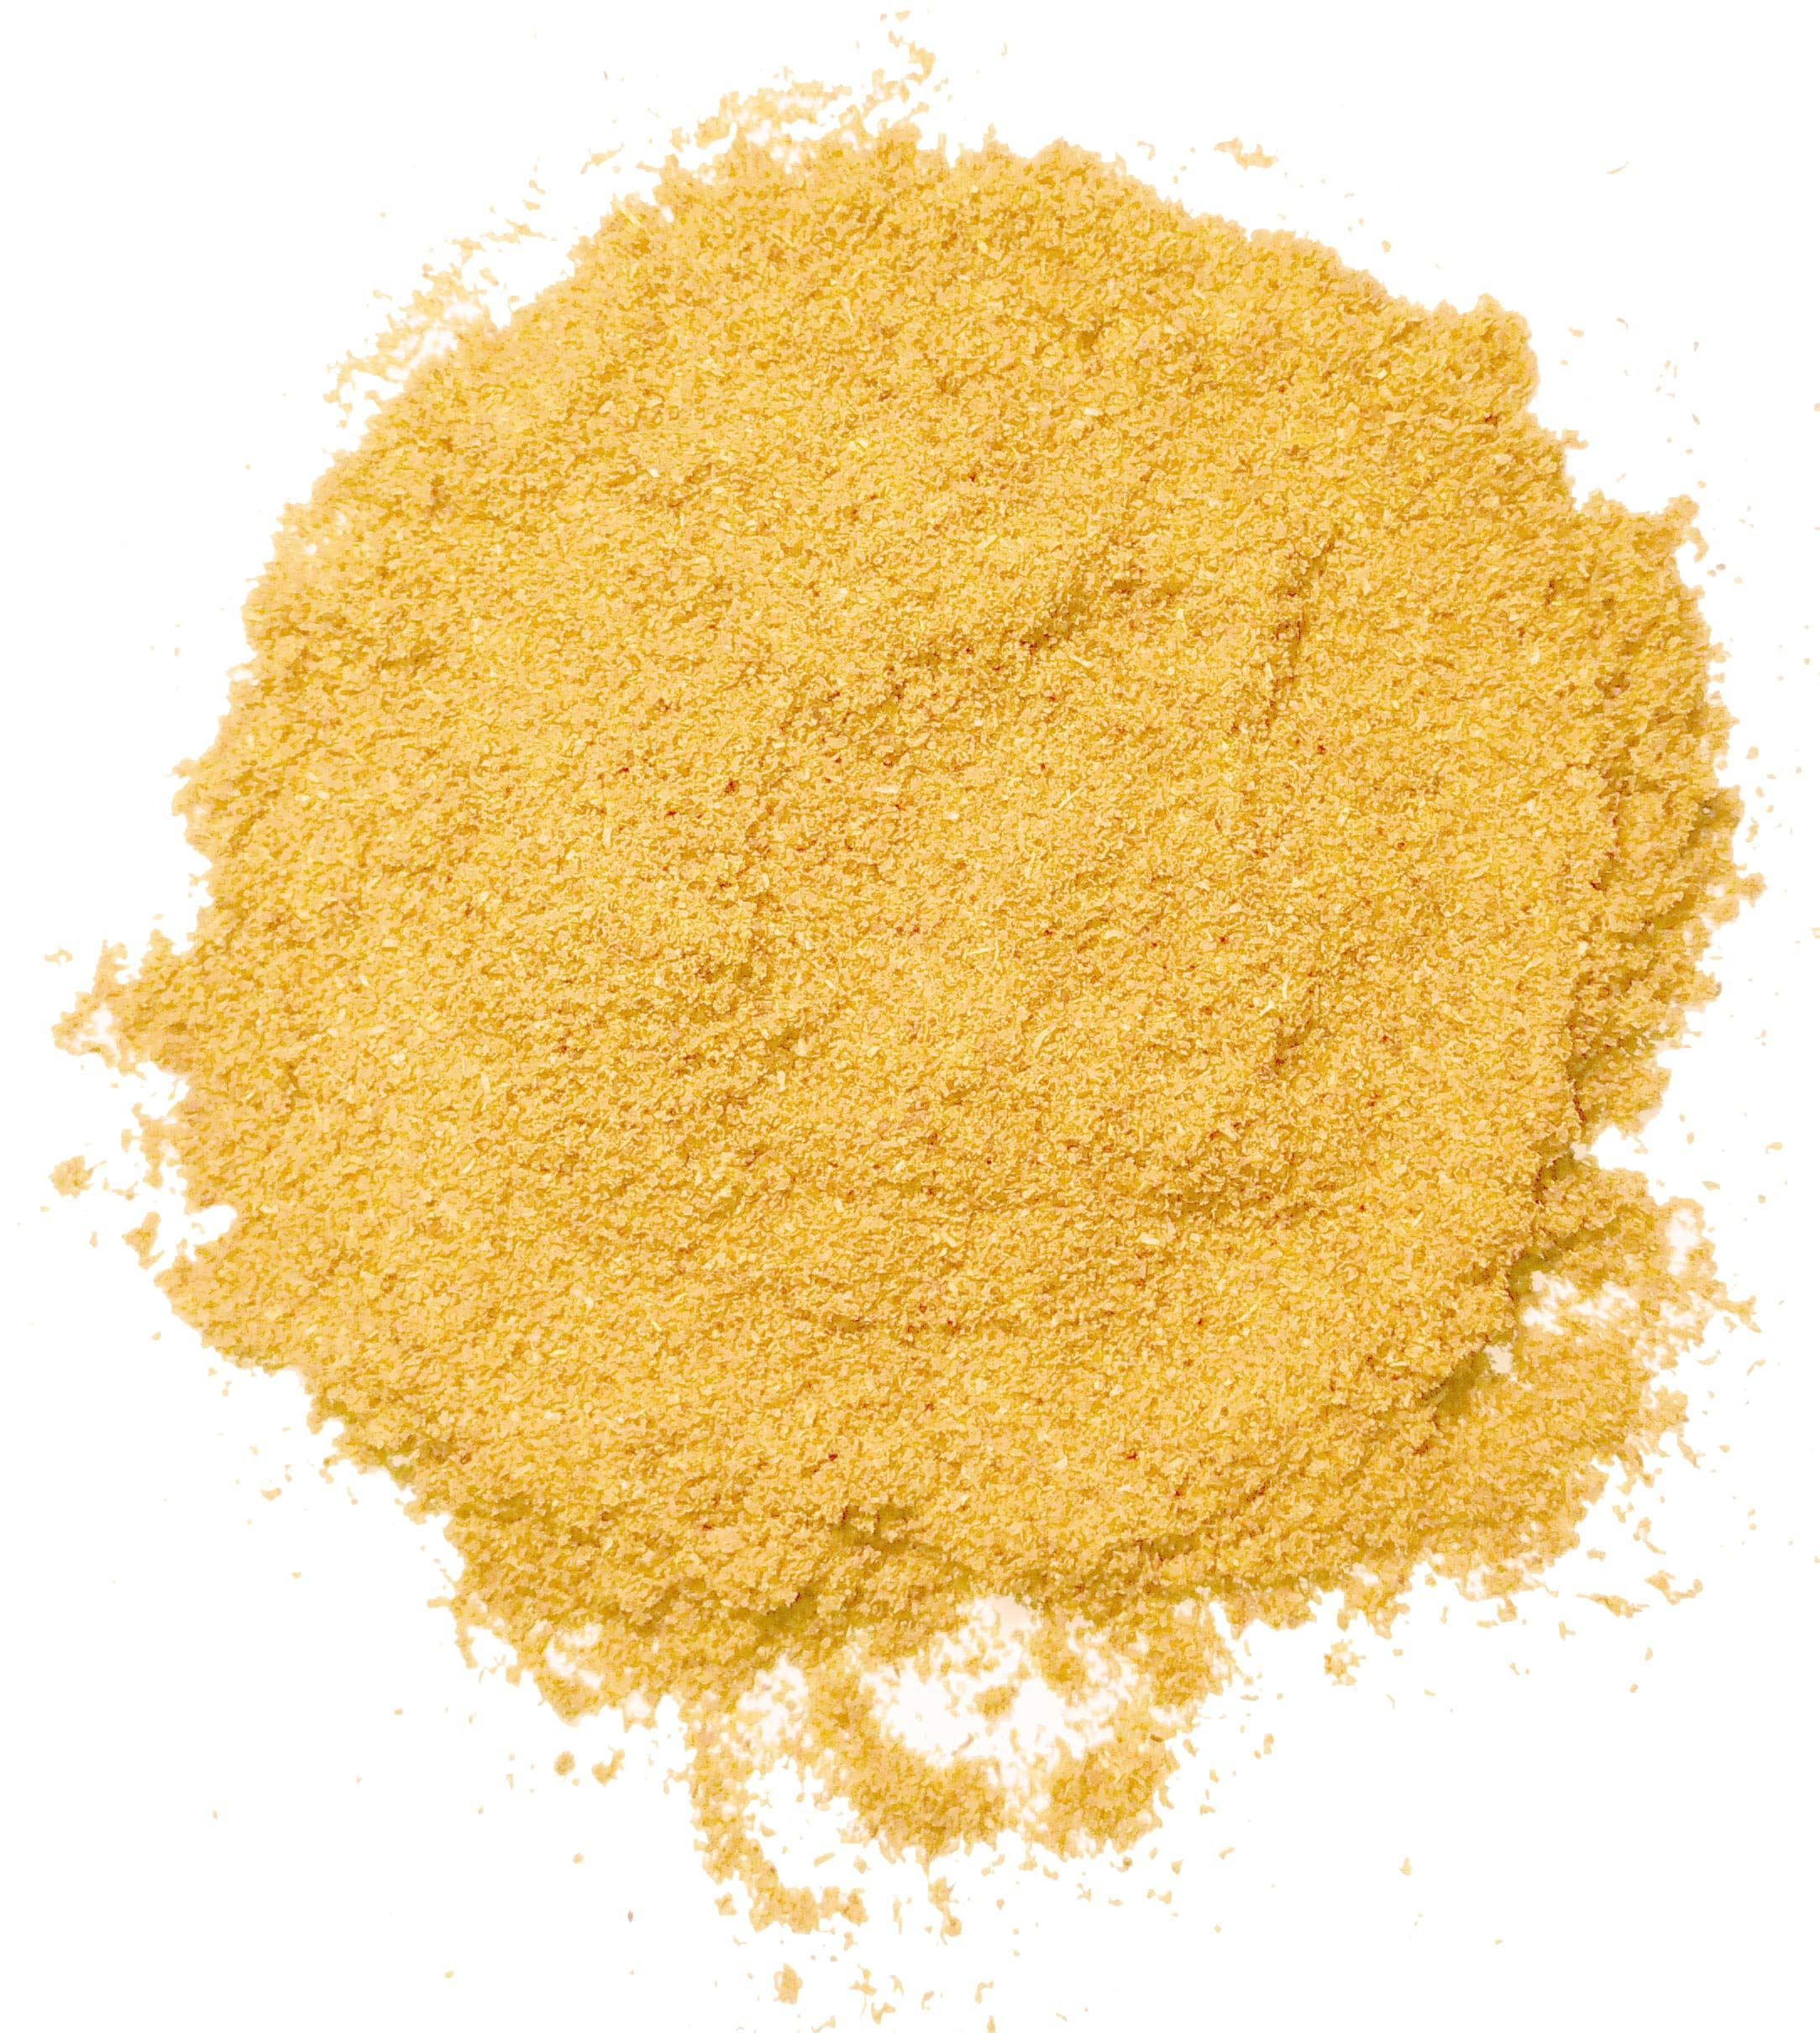 Organic Golden Berry Powder, 8 Pounds — Non-GMO, Made from Raw and Dried Goldenberries, Vegan Superfood, Rich in Vitamins and Minerals, Great for Drinks, Teas and Smoothies, Bulk by Food to Live (Image #3)